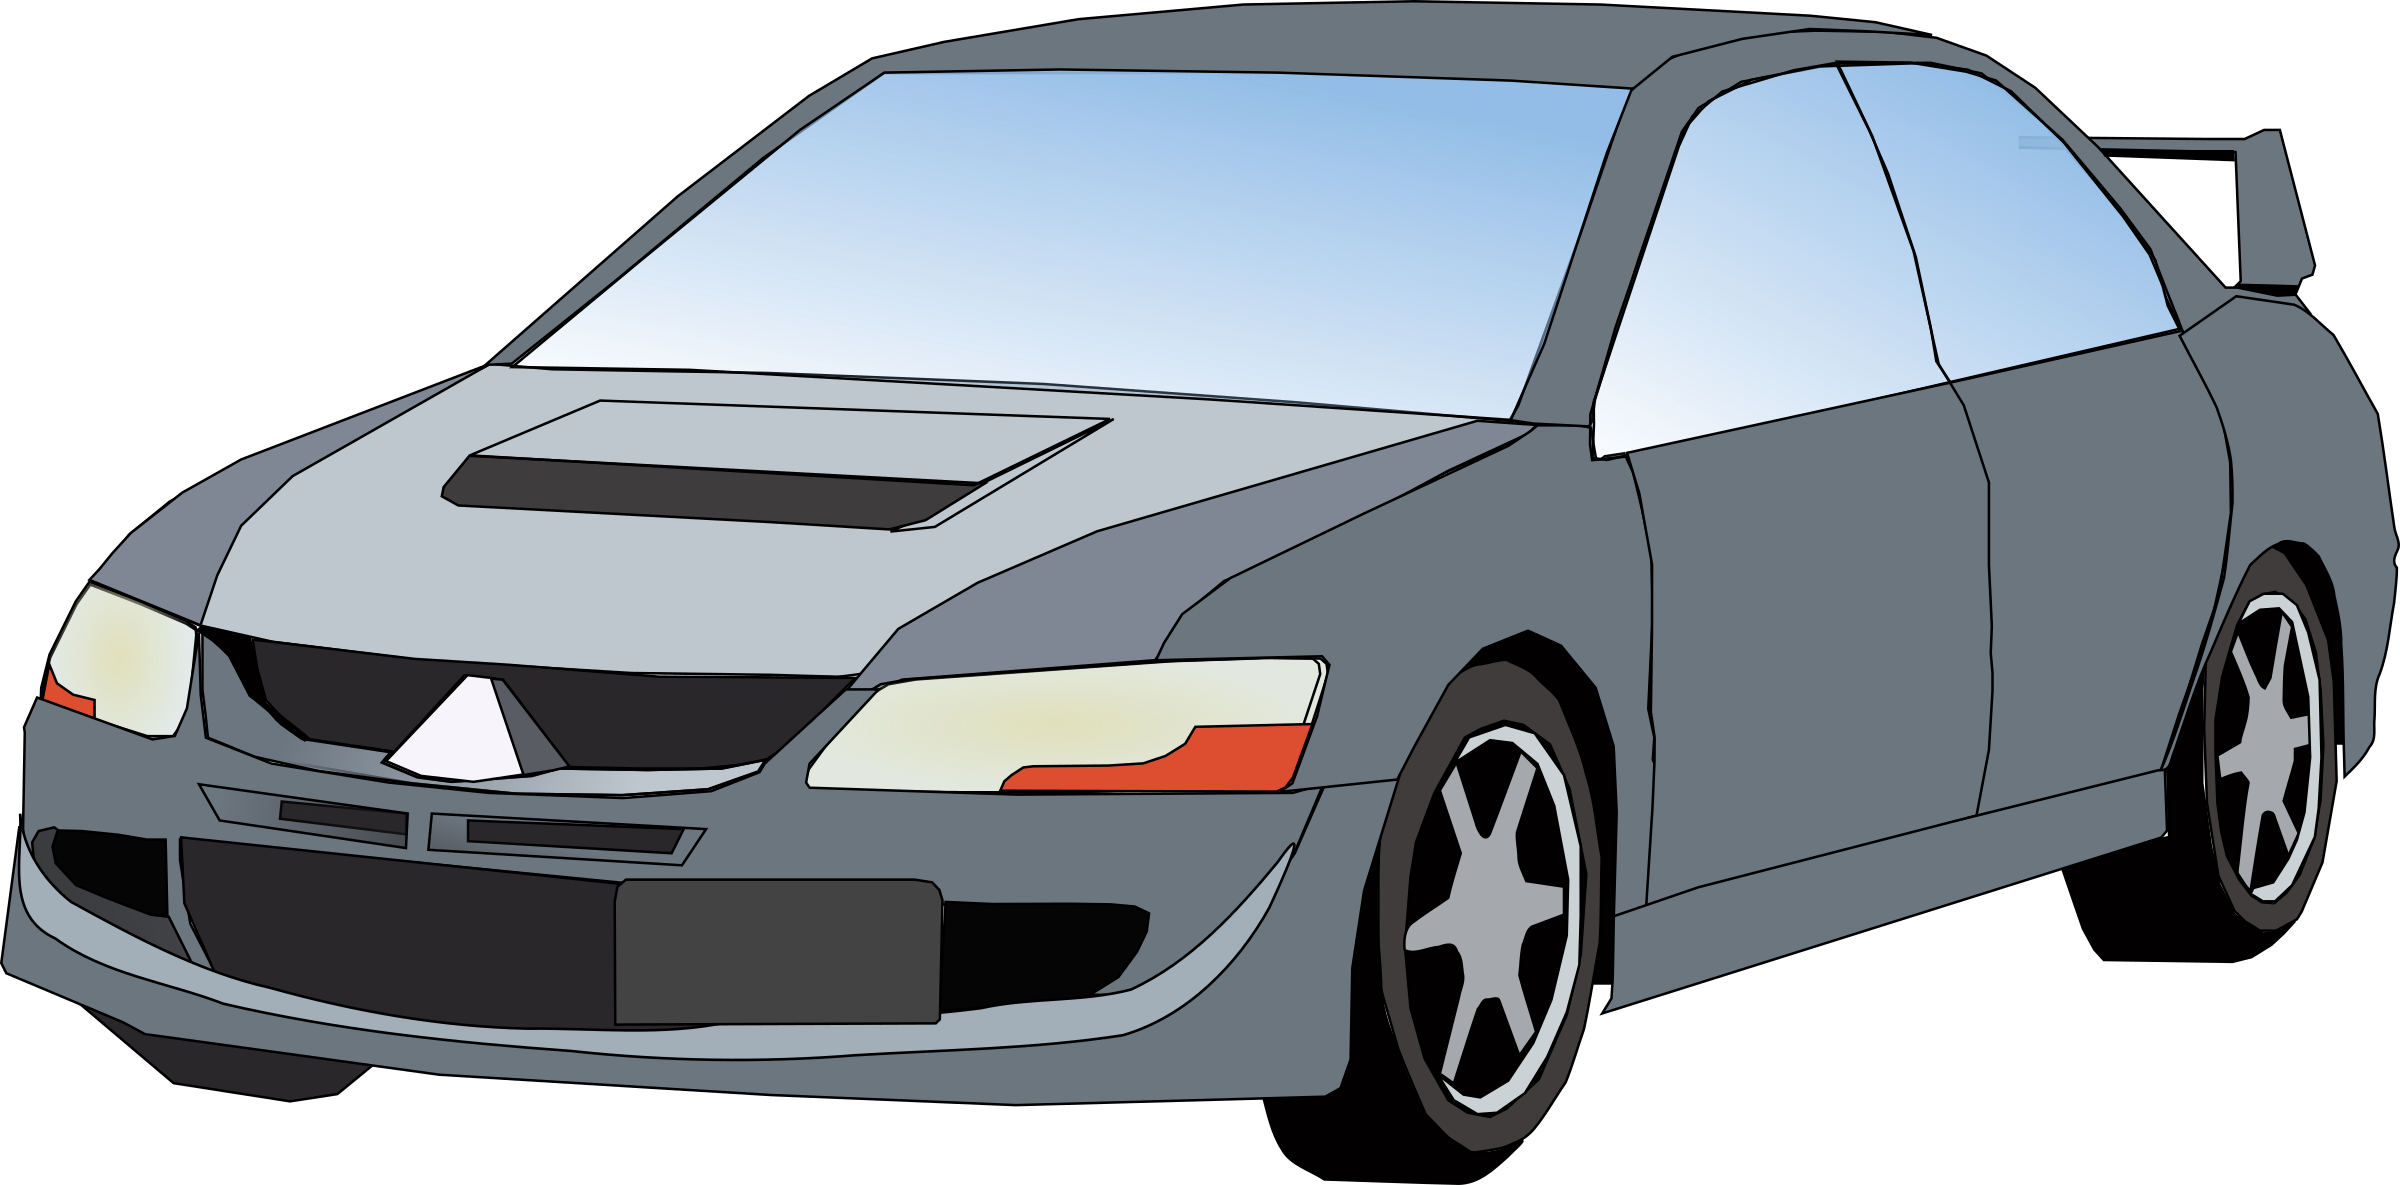 Car hood clipart graphic transparent library Clipart - car Mitsubishi graphic transparent library